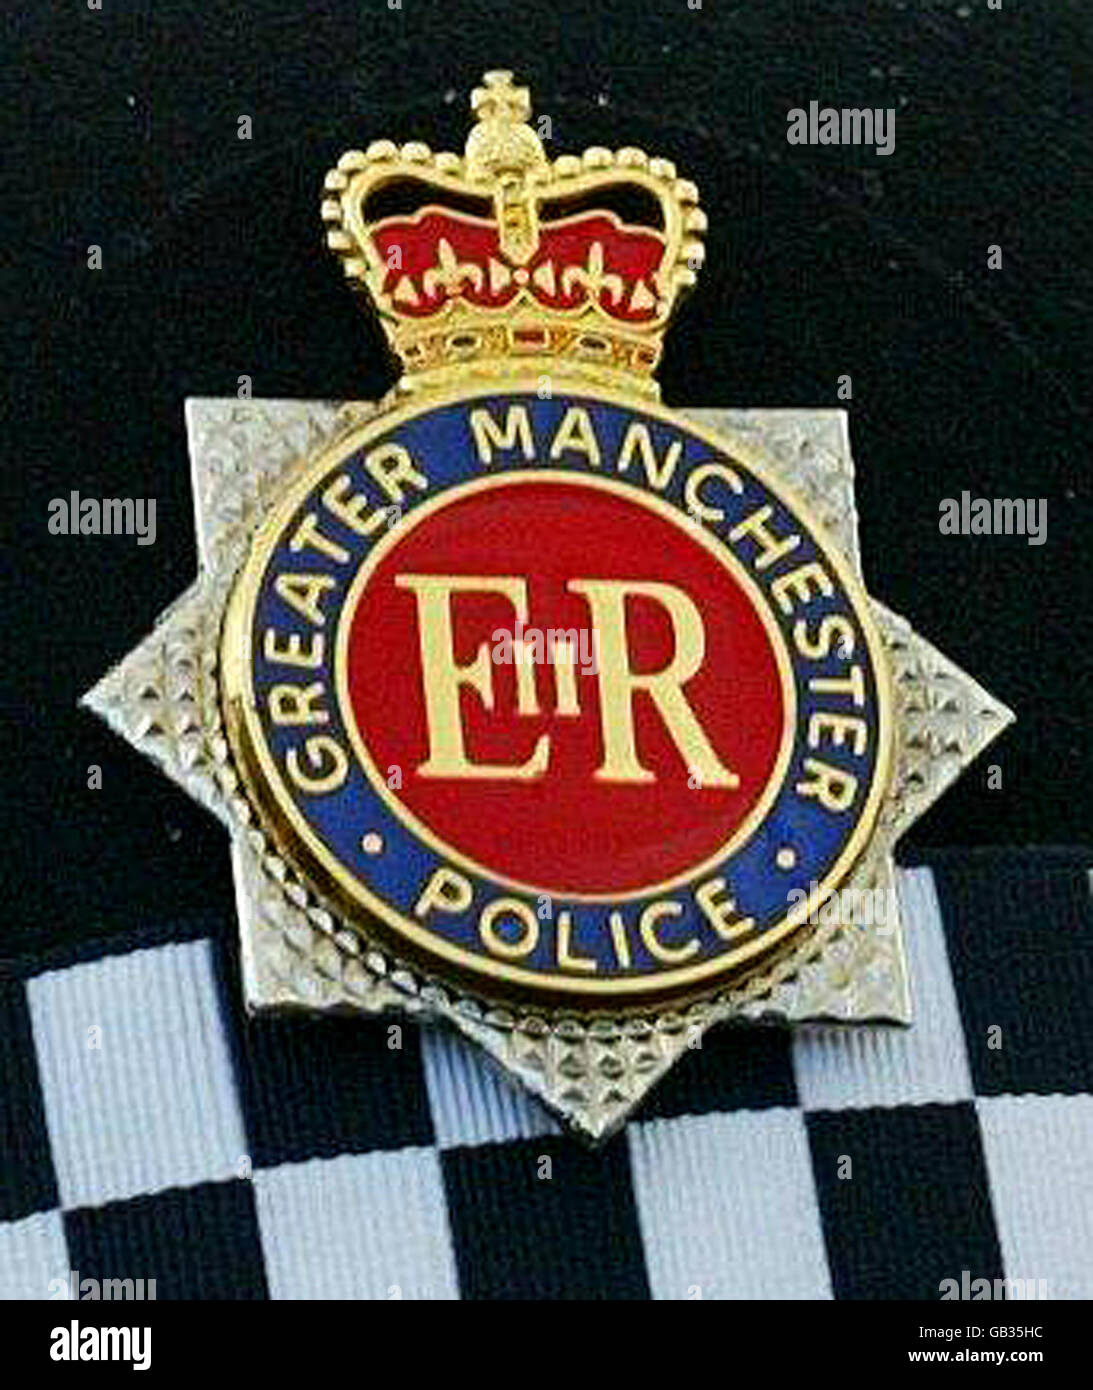 Greater Manchester Police Badge Stock Photo 110093688 Alamy